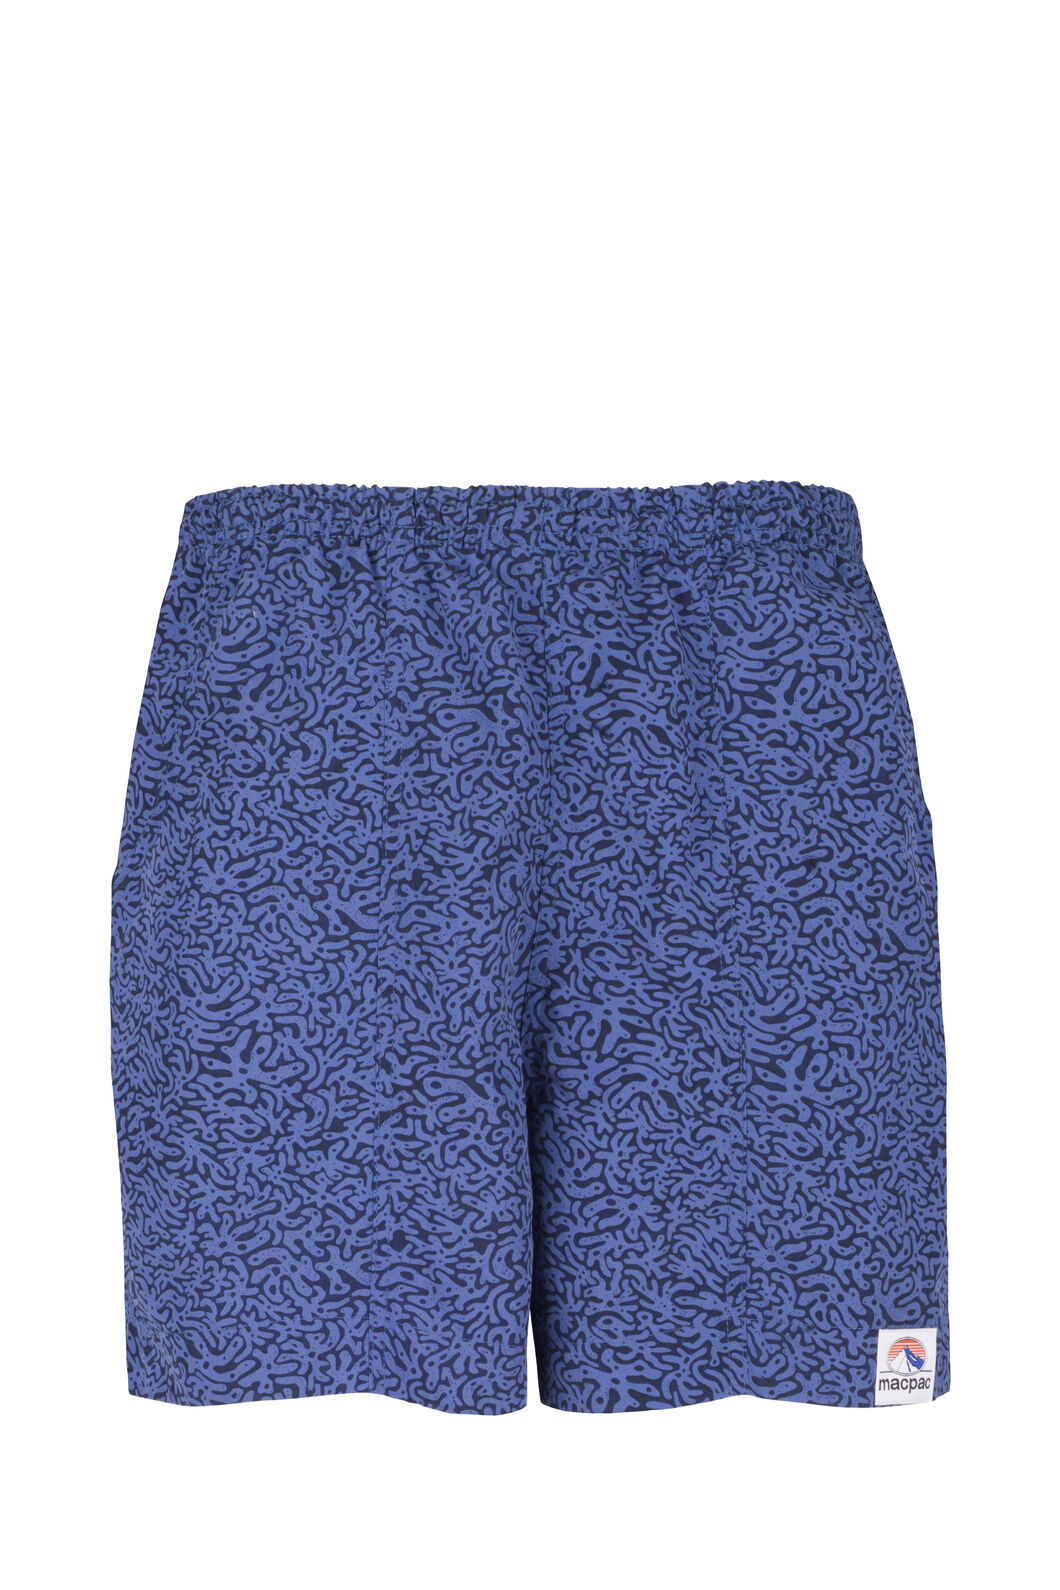 Macpac Winger Shorts — Men's, Mood Indigo Print, hi-res